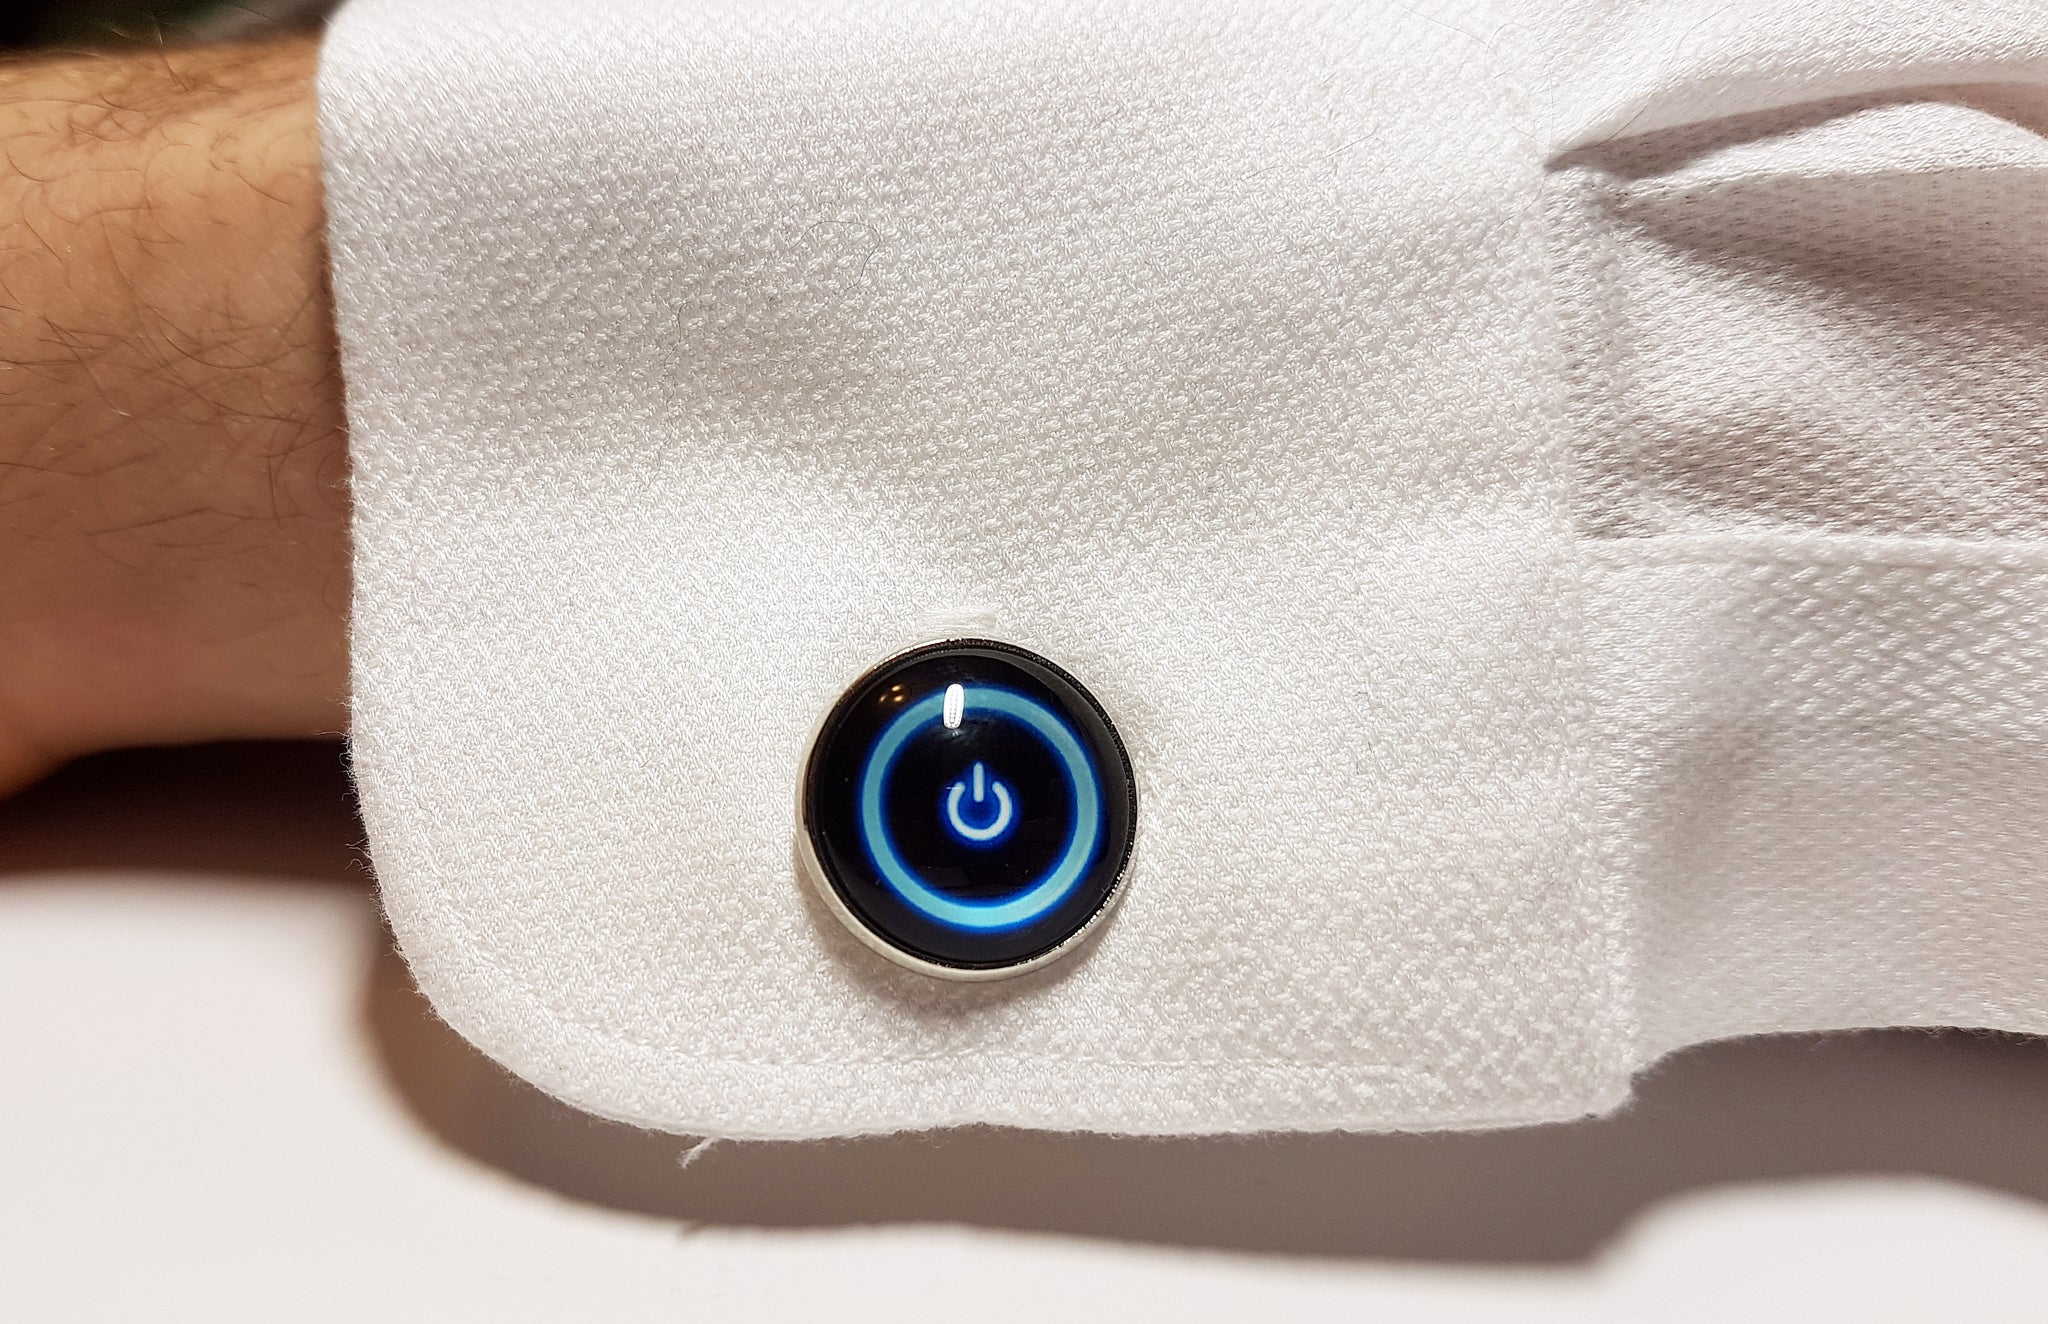 blue and black power button cufflinks with silver frame | The Perfect Gentleman